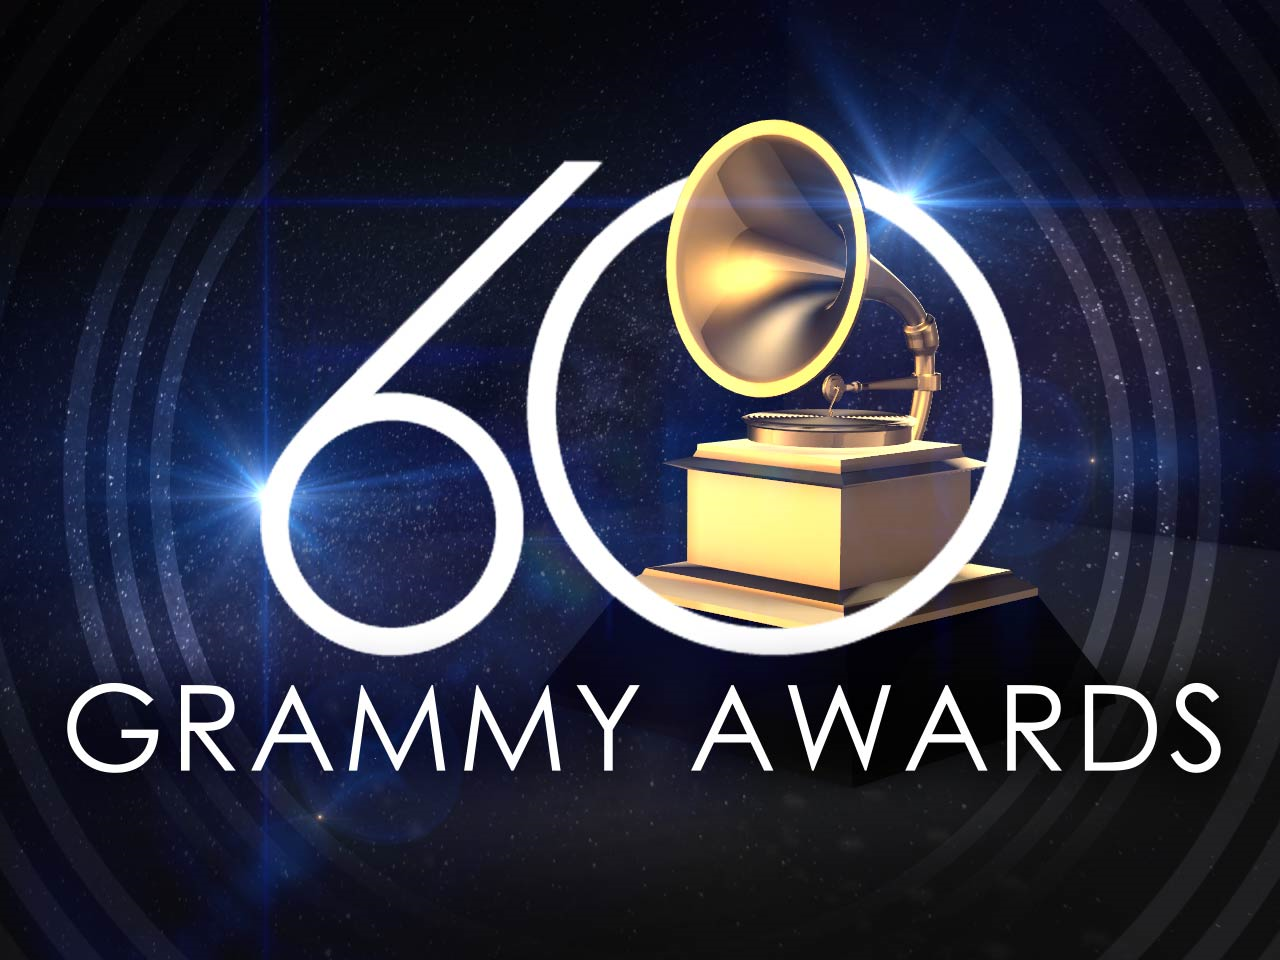 Grammys_1517004863923.png